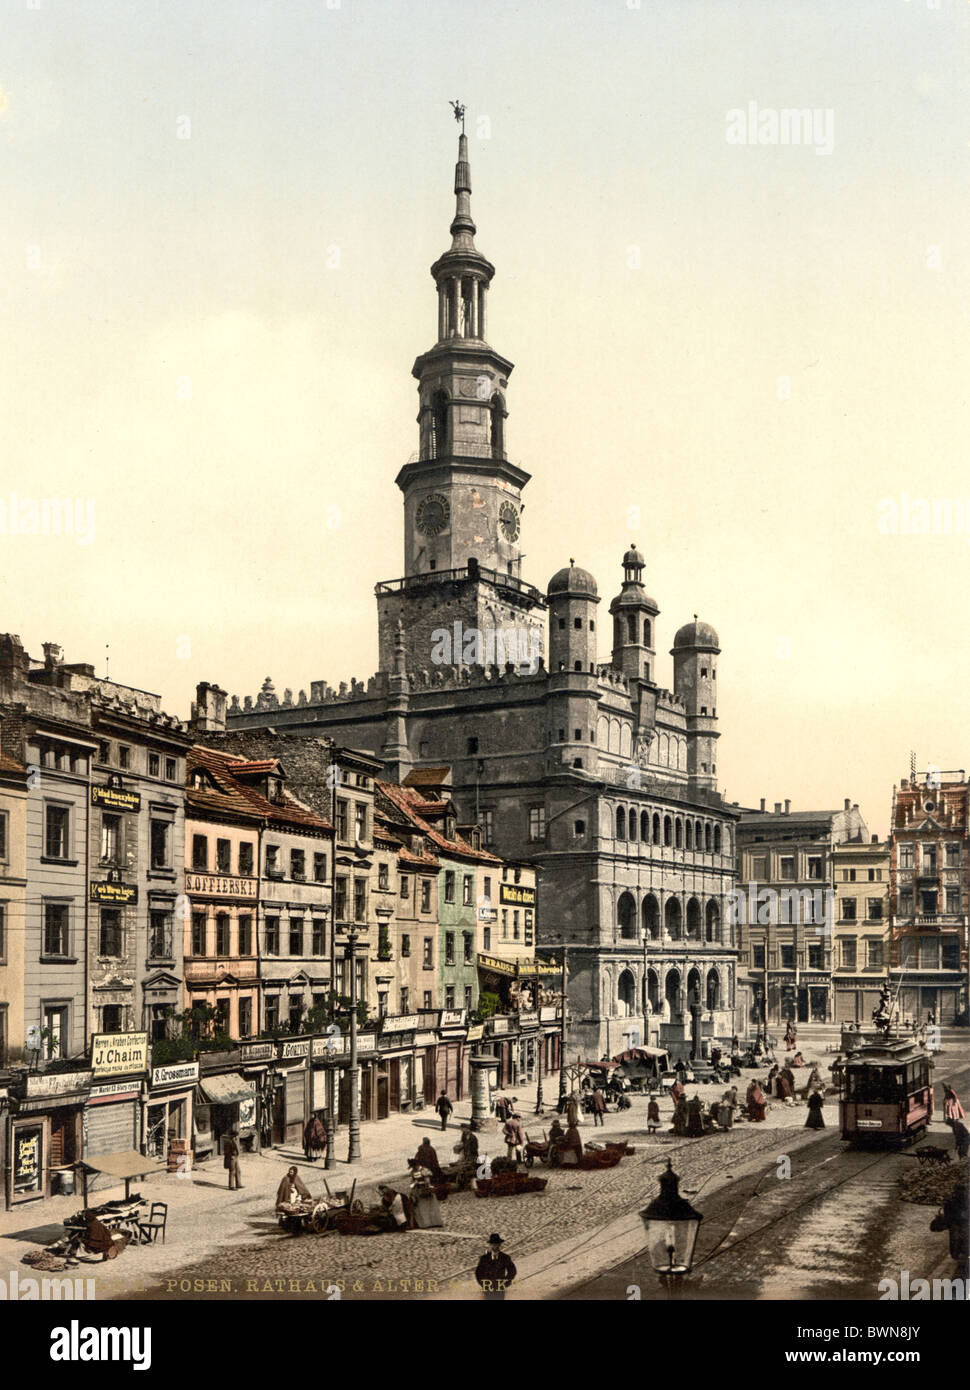 Posen Poznan formerly Germany Europe German Empire Poland Photochrom about 1900 history historical historic - Stock Image